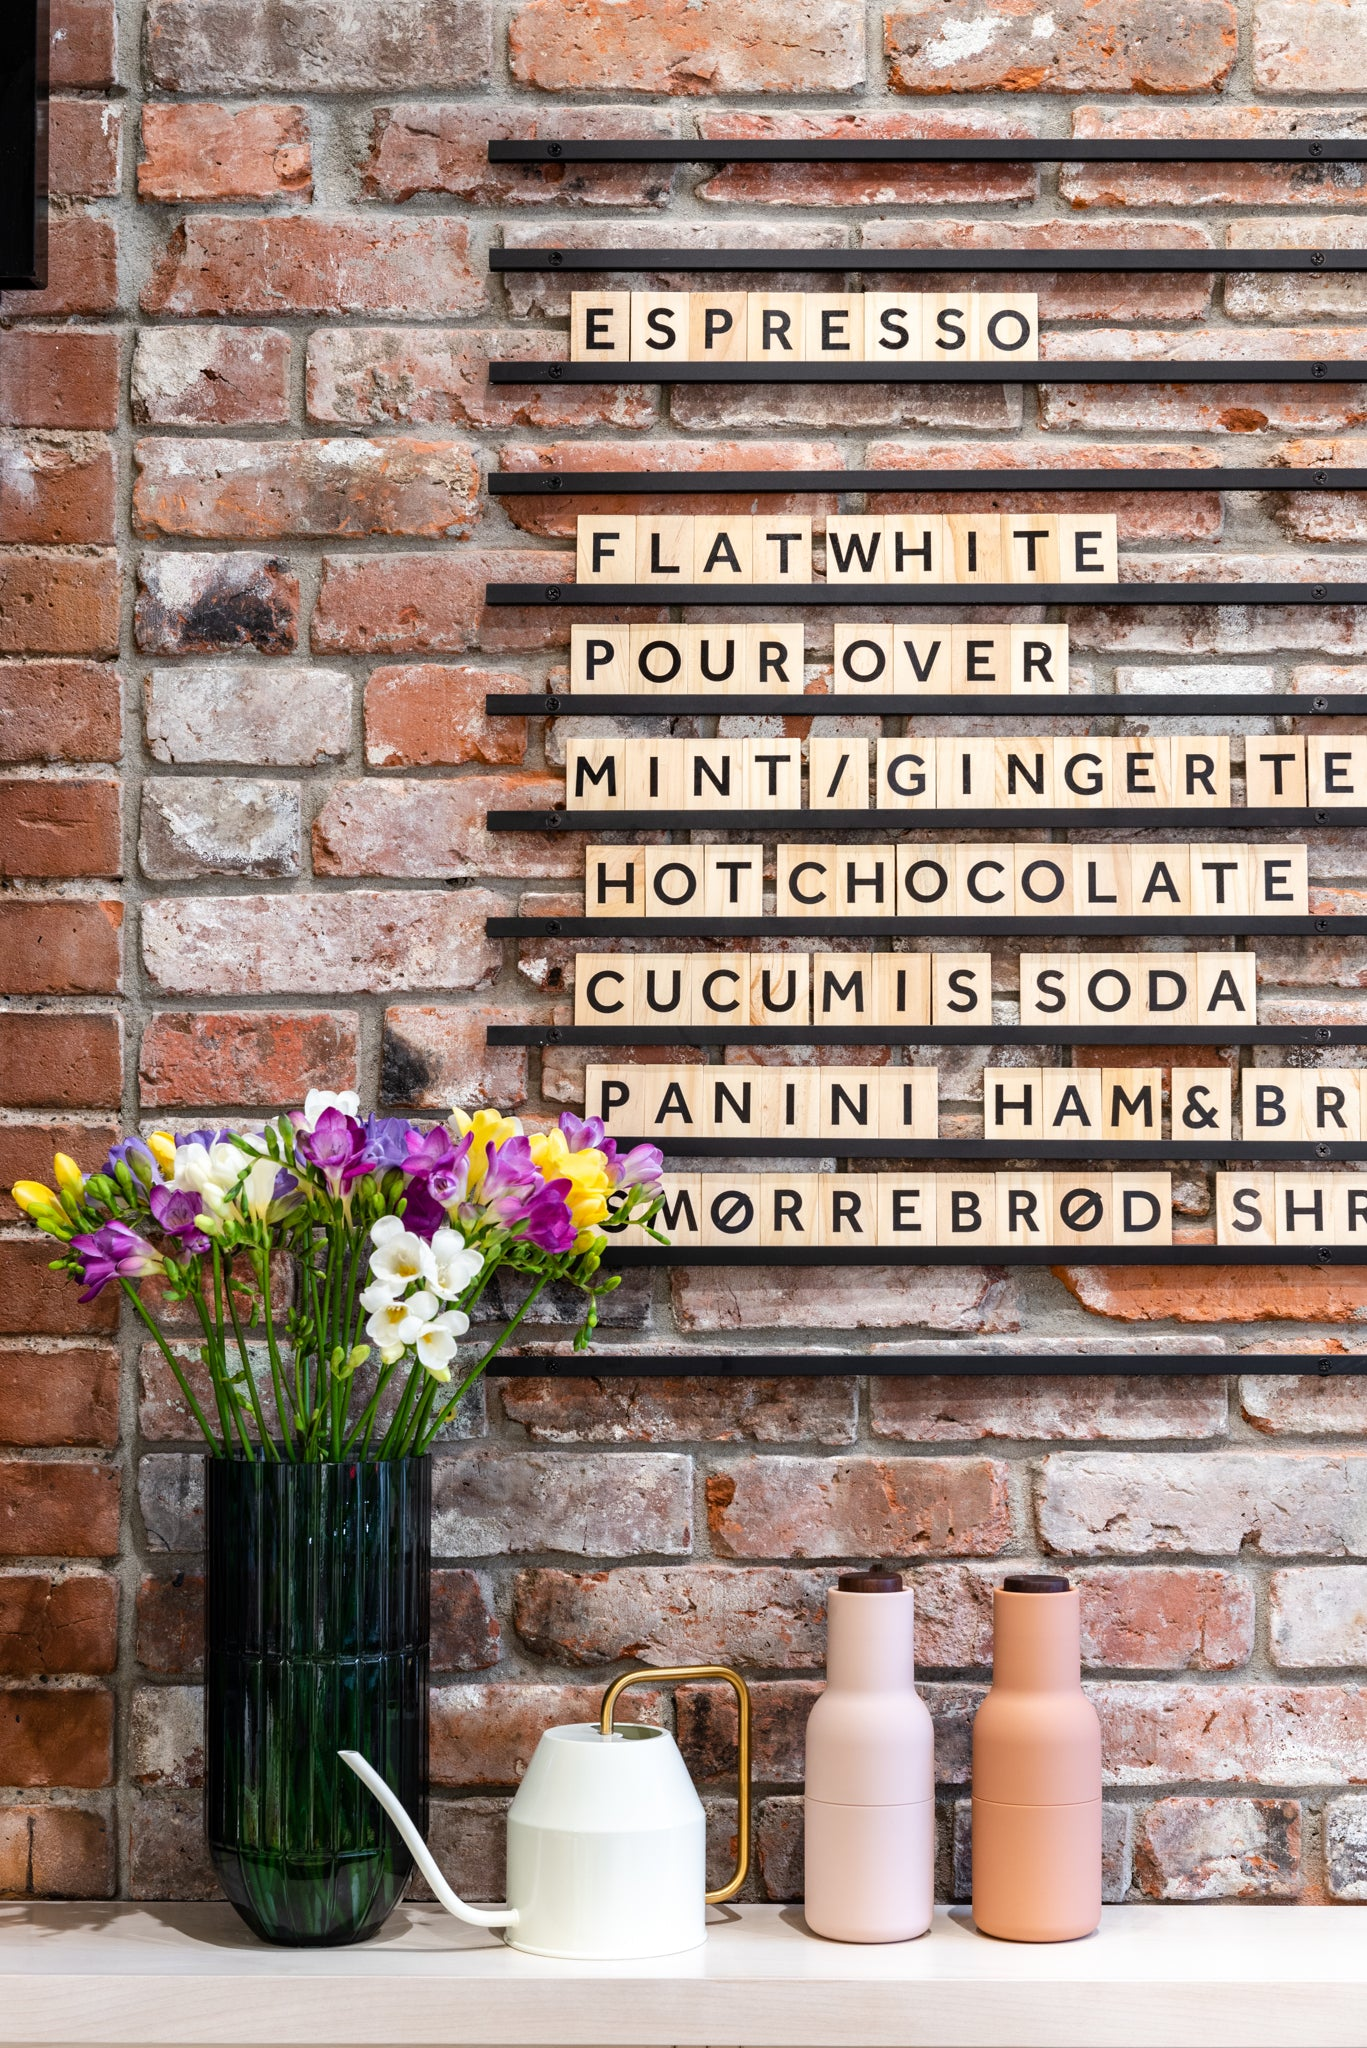 Wooden Letter Board On Brick Wall For A Cafe Menu